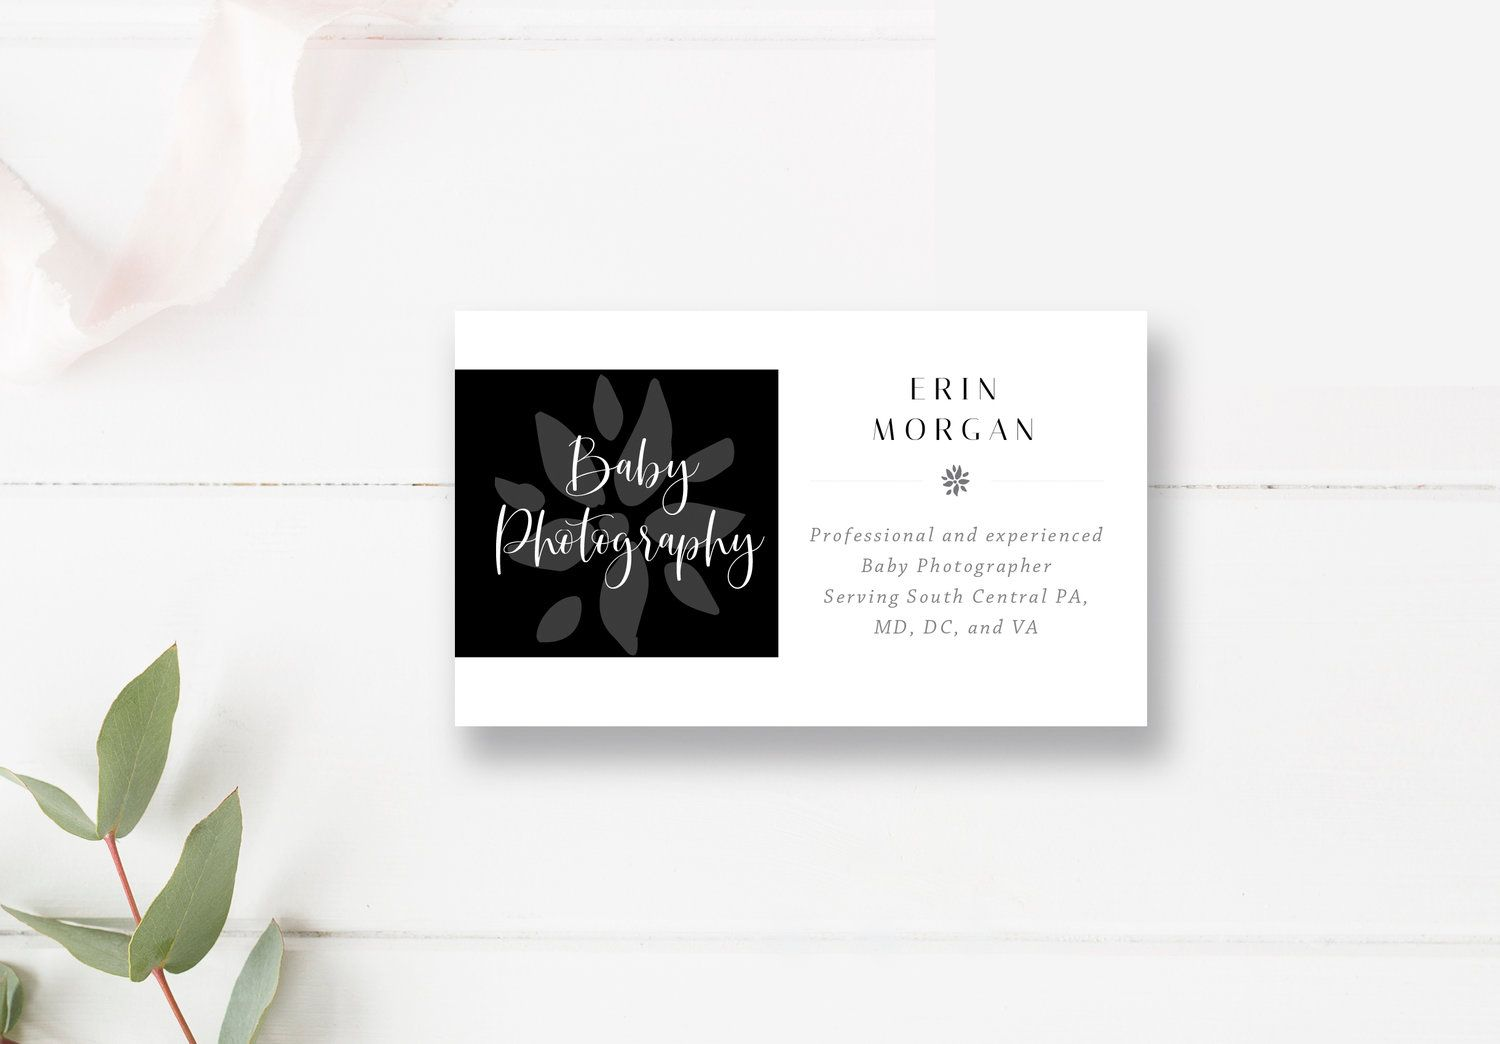 Photography Business Card Template Photoshop Template Photo Business Cards By Stephanie Design Photography Business Cards Photography Business Cards Template Photo Business Cards